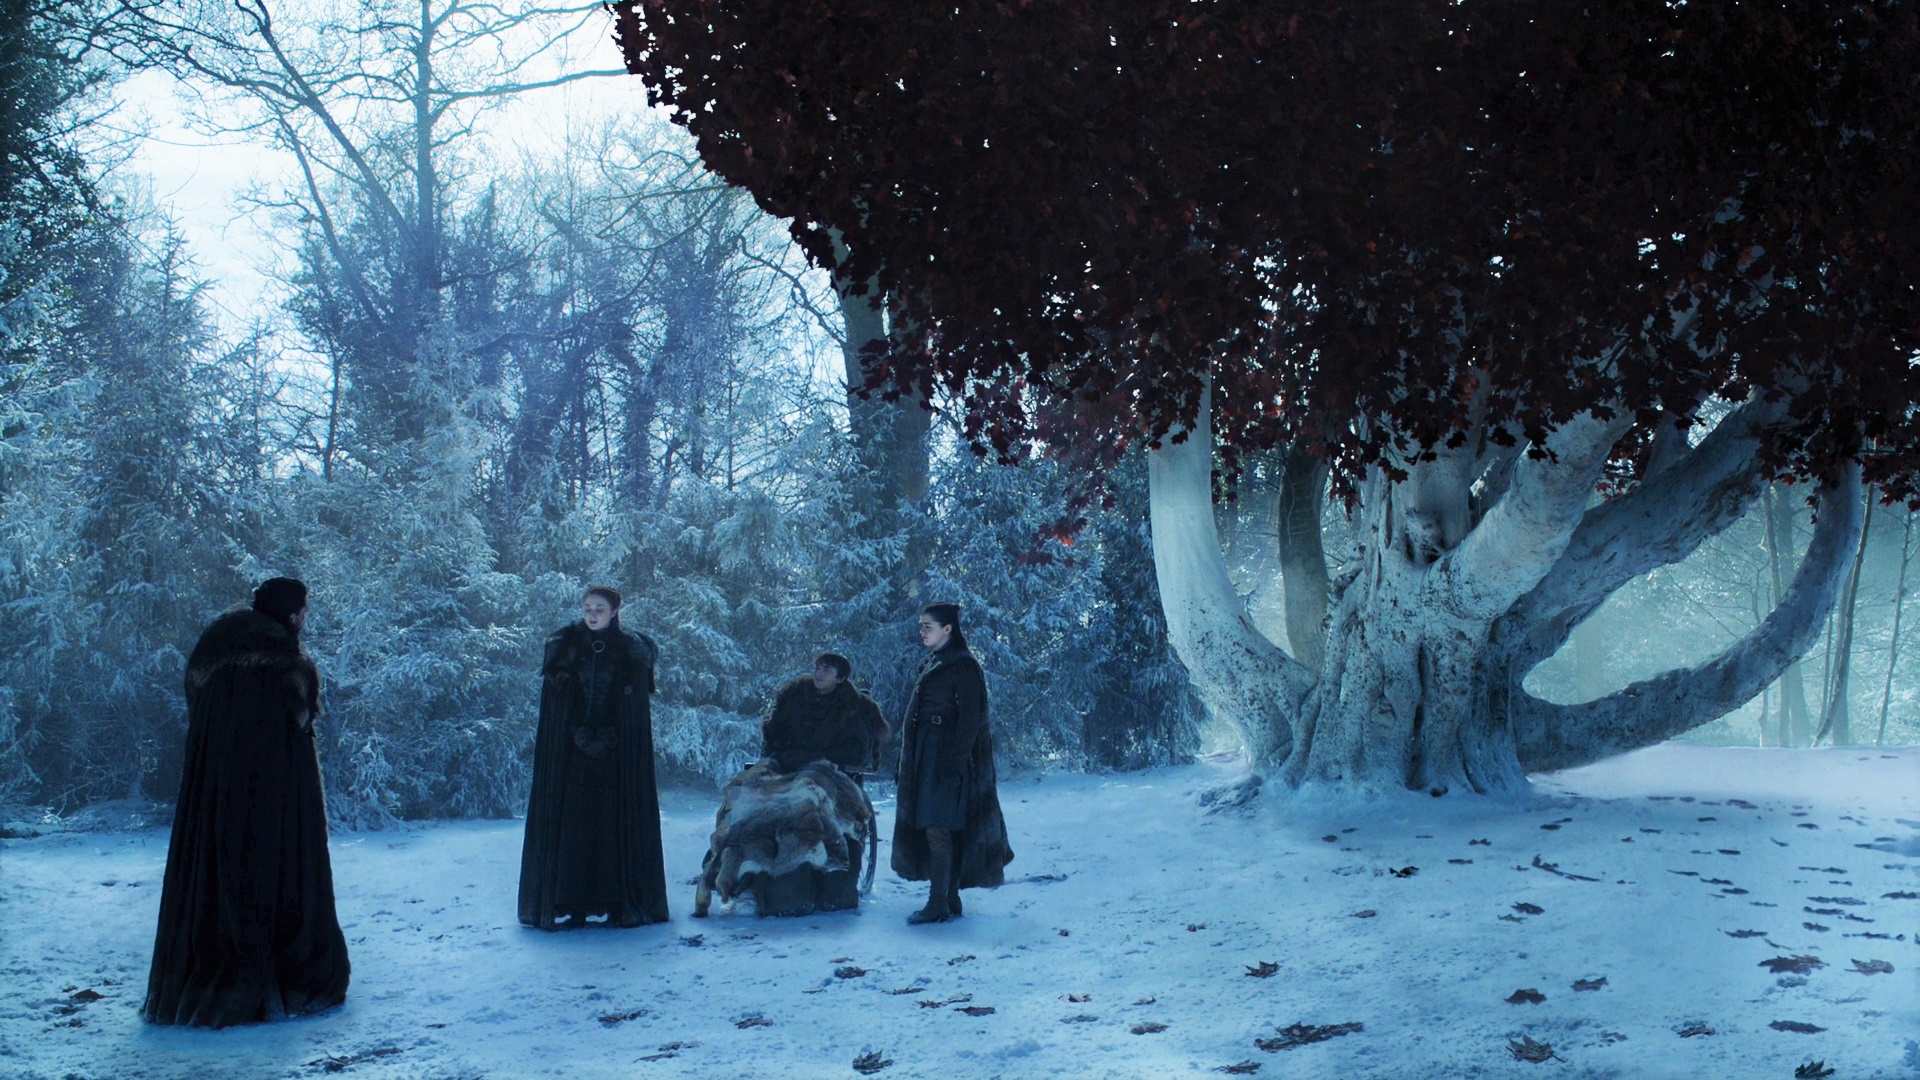 Be a tree and leave, Bran.